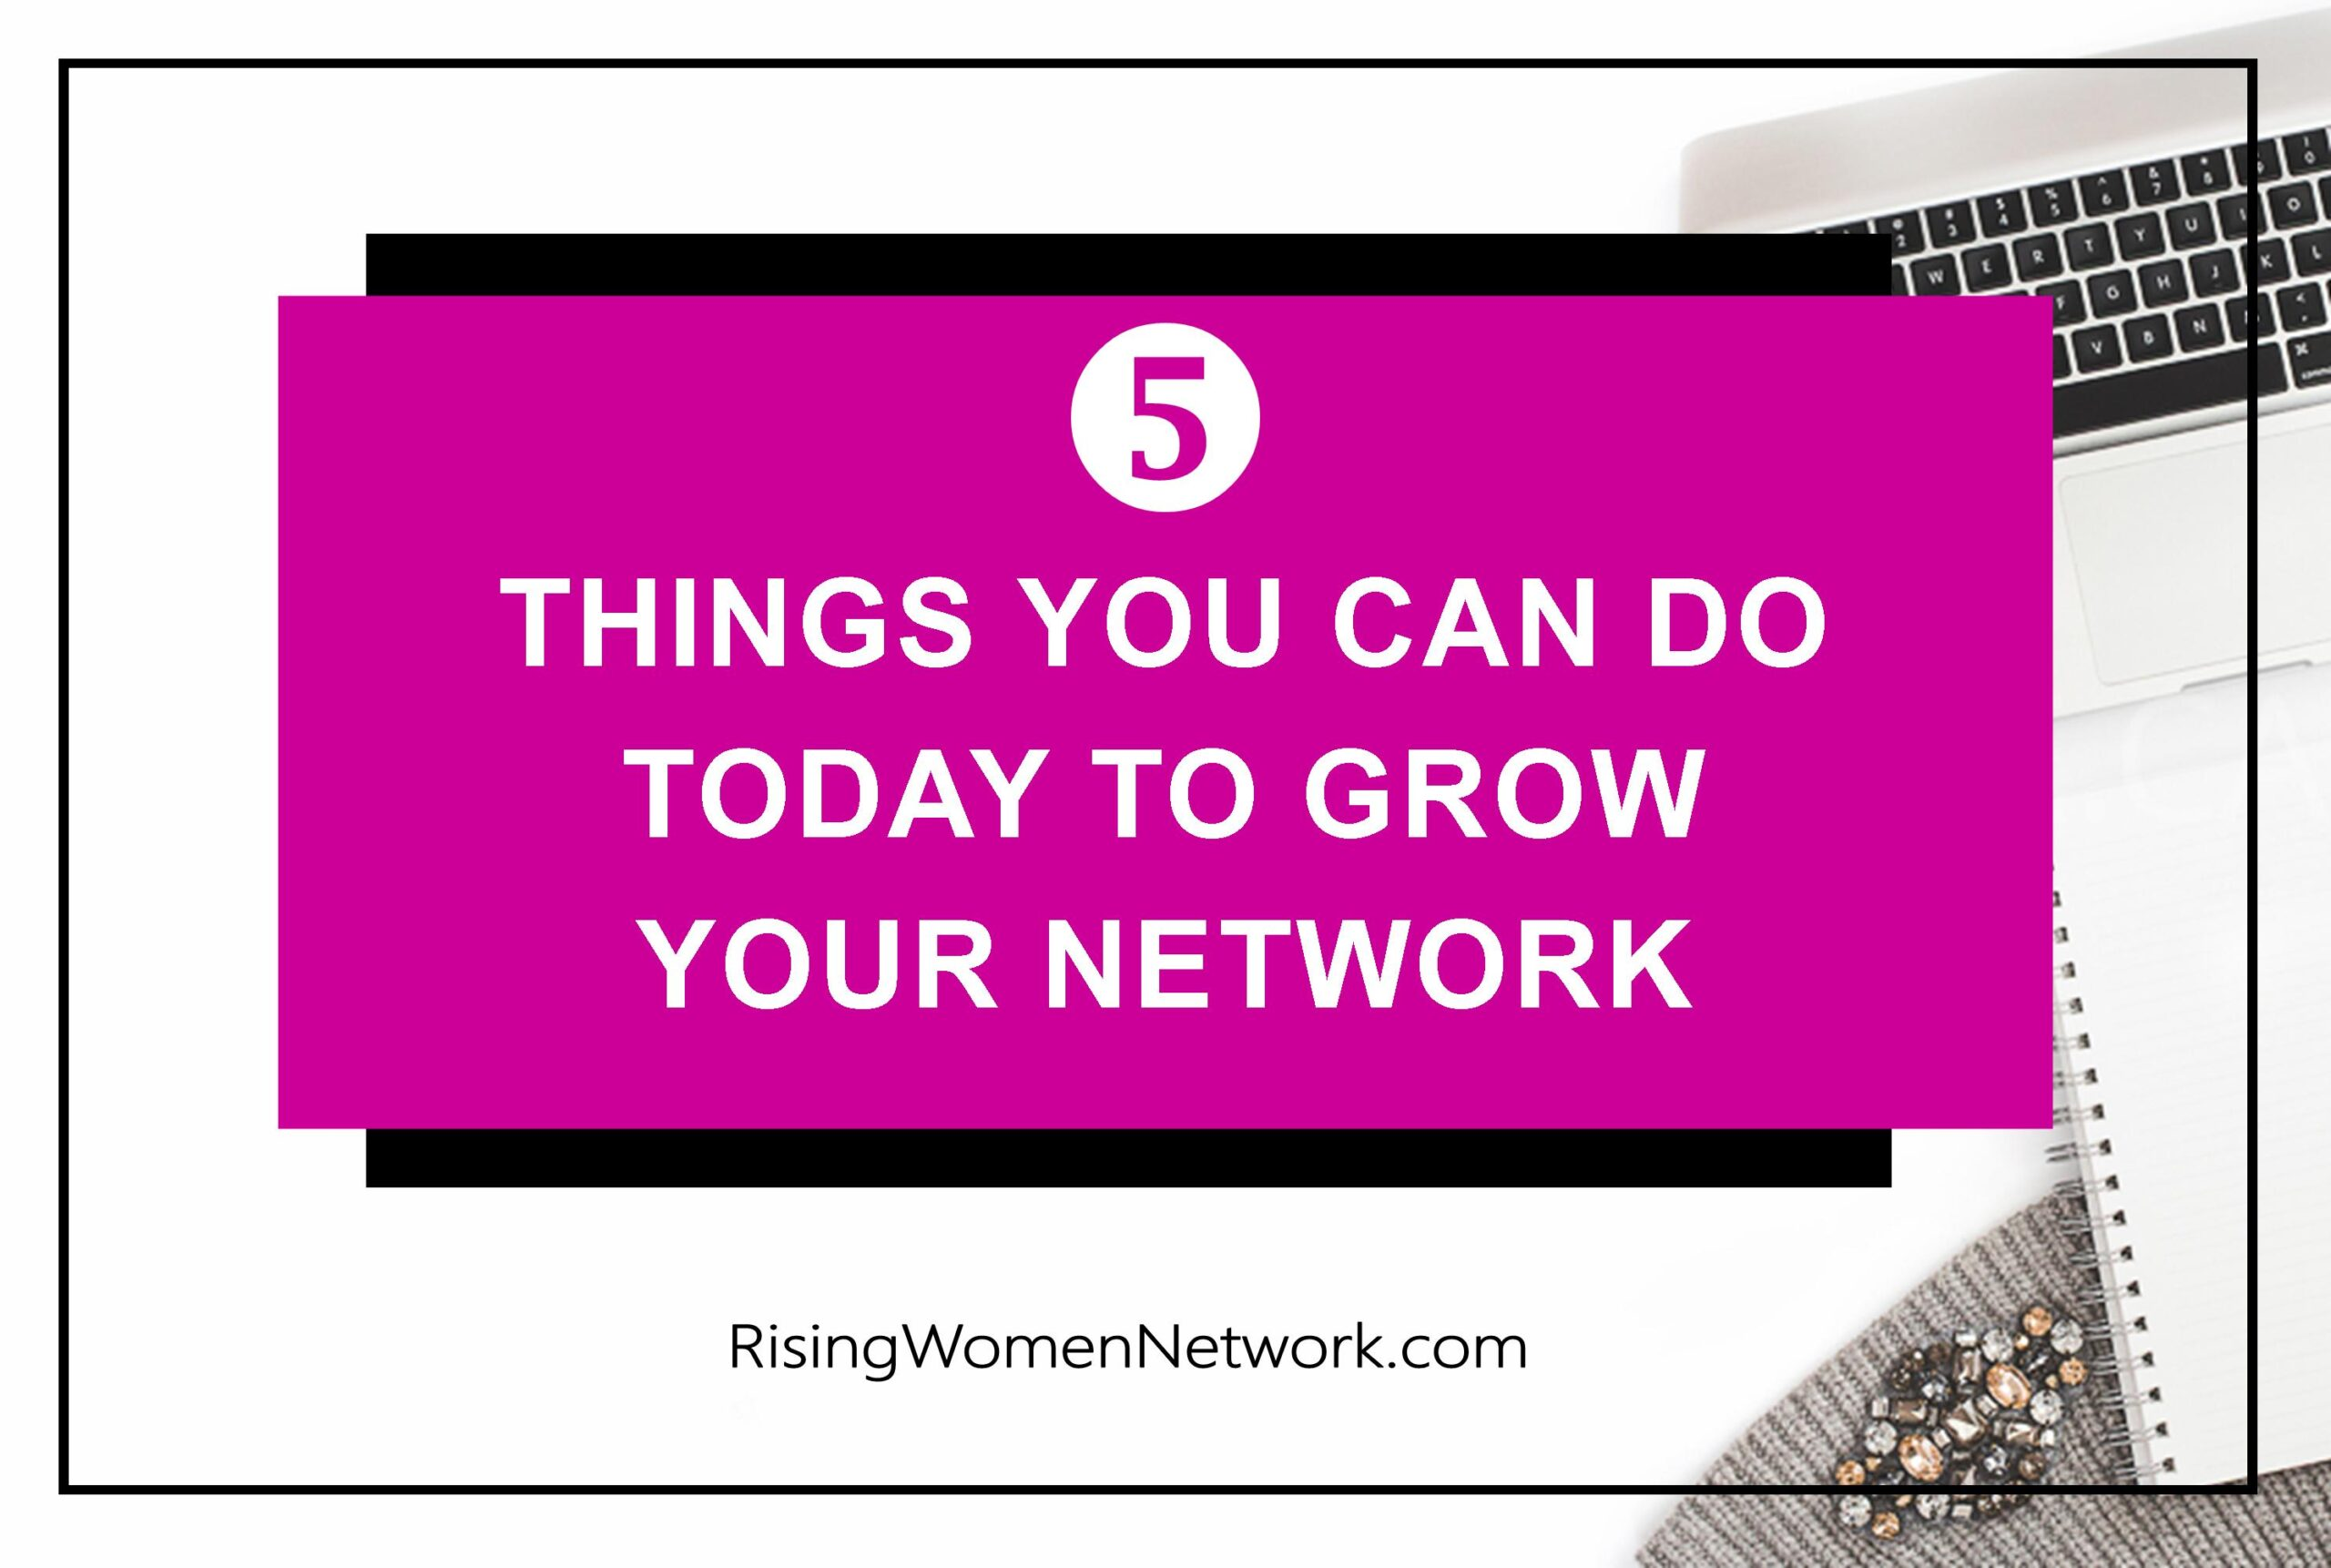 5 Things You Can Do Today To Grow Your Network